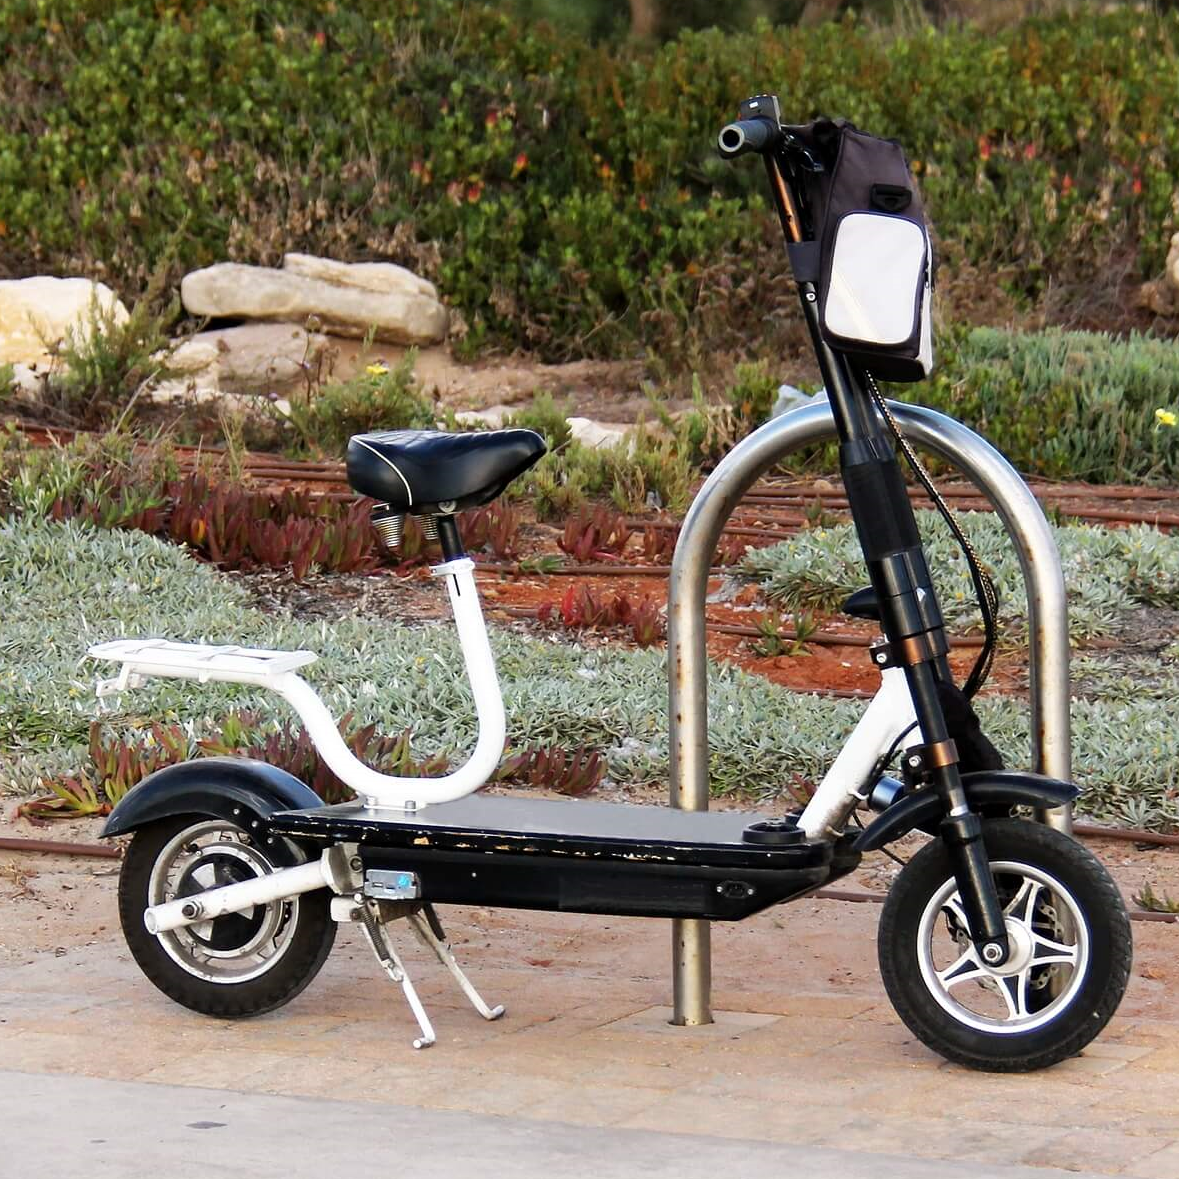 scooter with seat